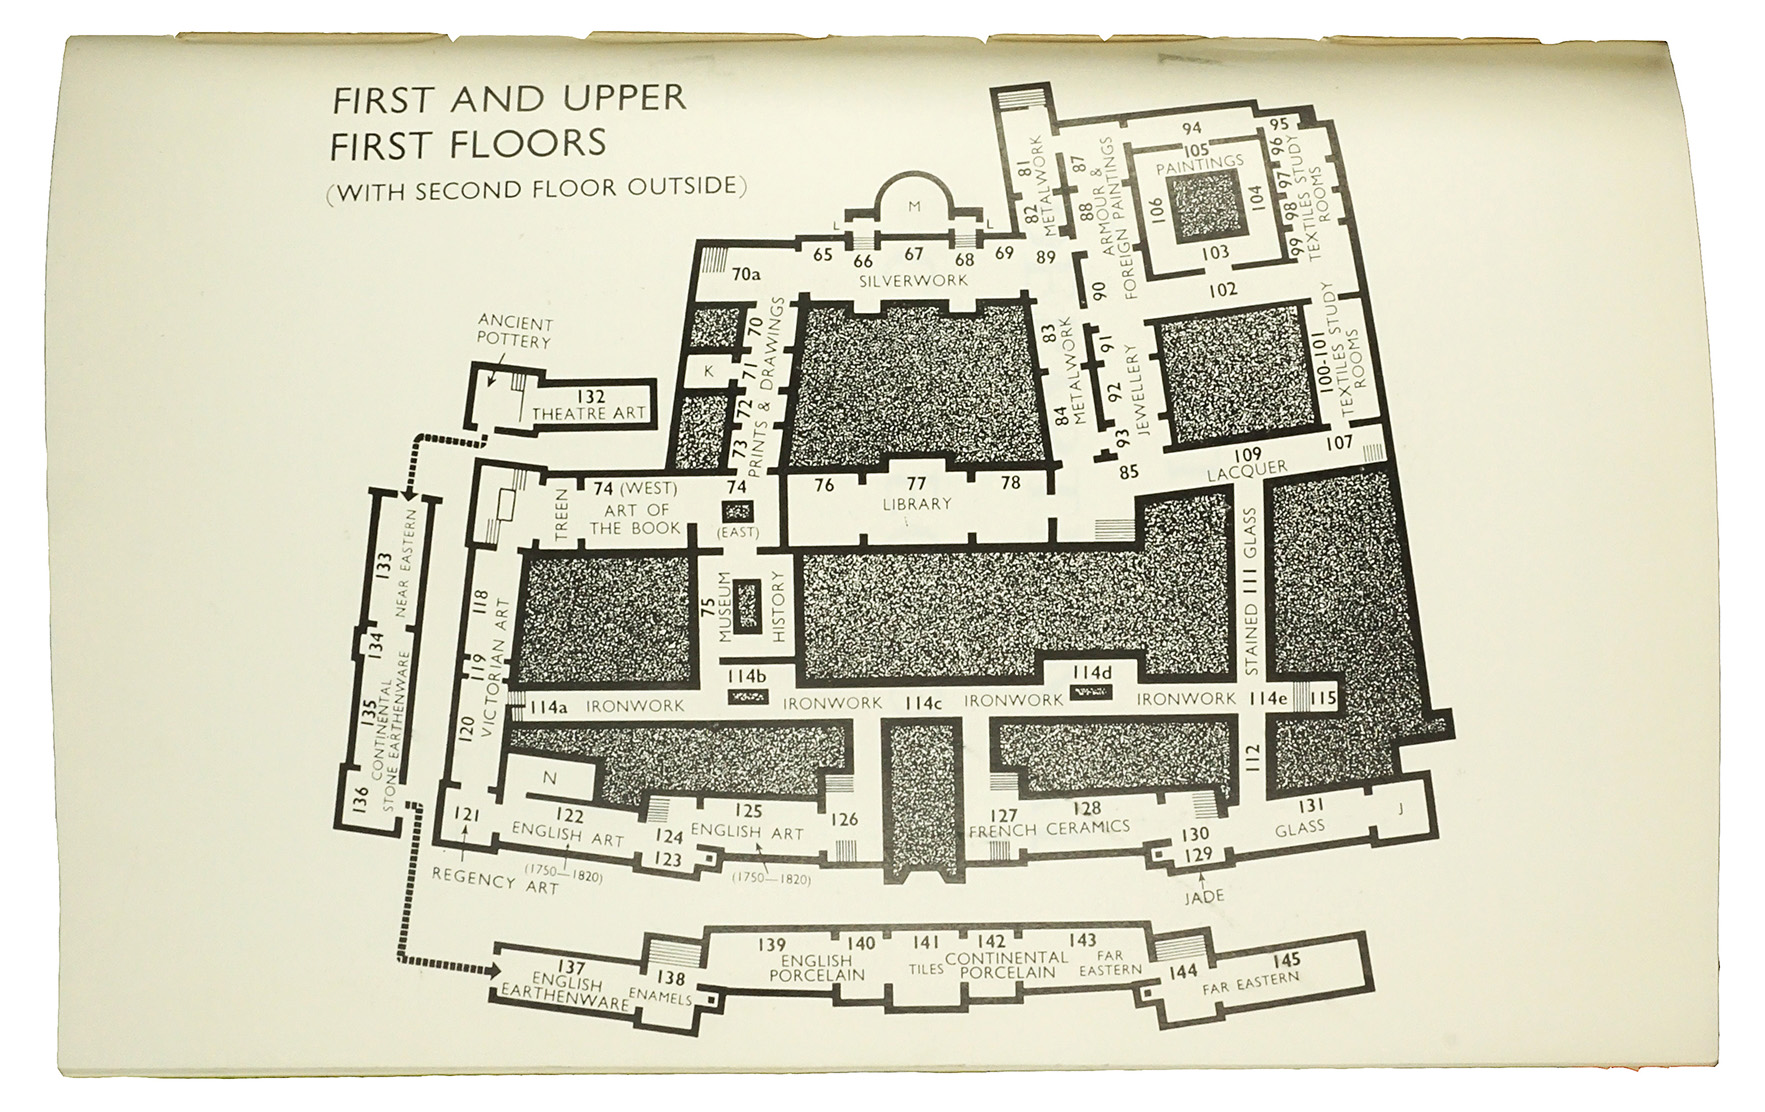 Best laid plans: mapping the V&A by Andrew McIlwraith ...